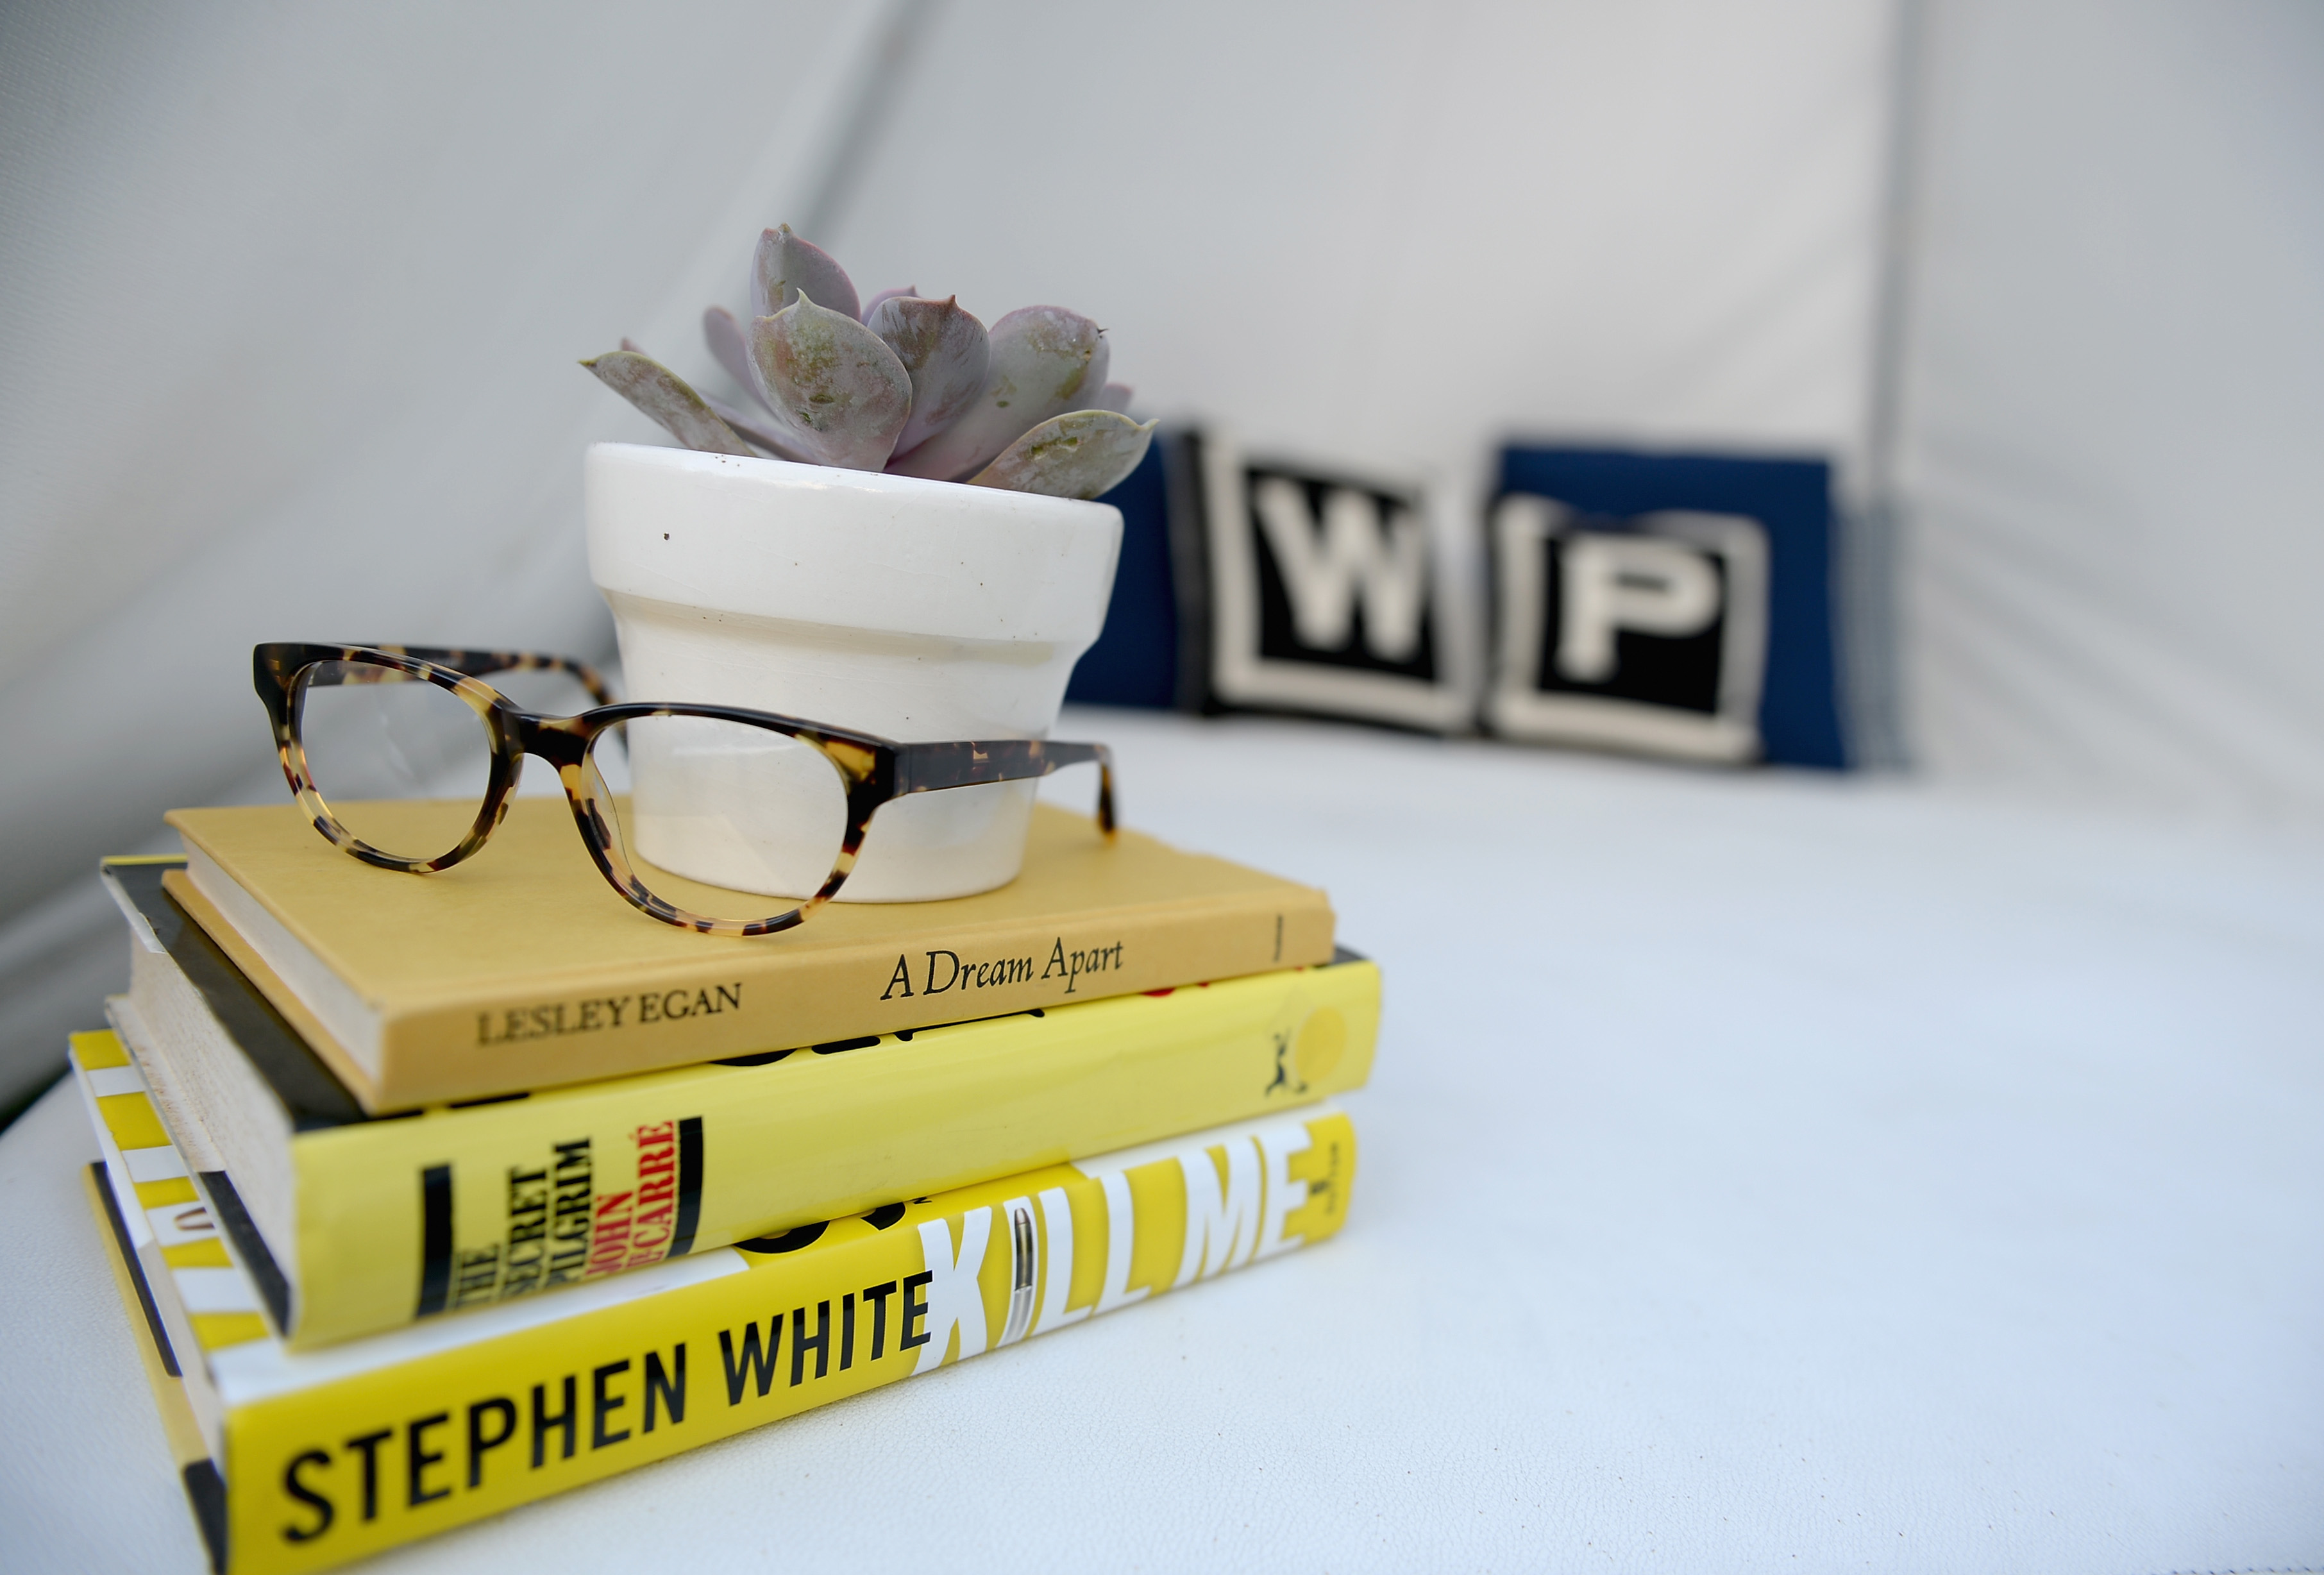 Warby Parker glasses resting on books